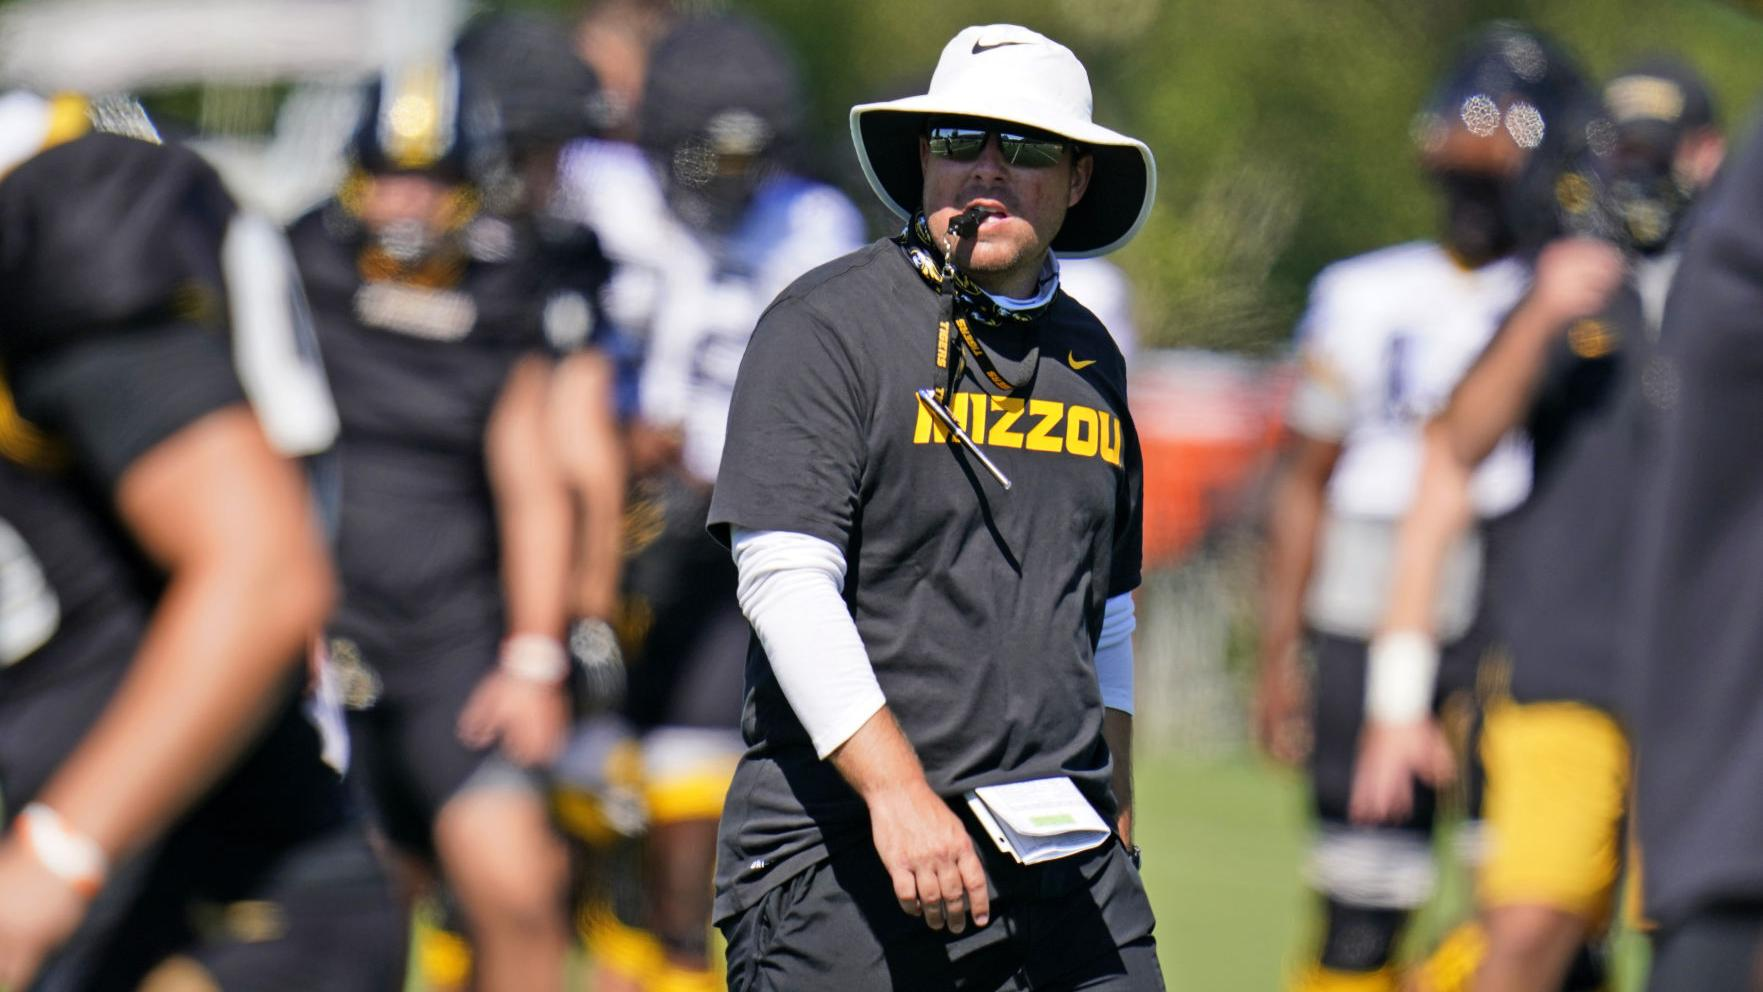 Mizzou's defensive changes, wideout additions highlight Drinkwitz's first full spring